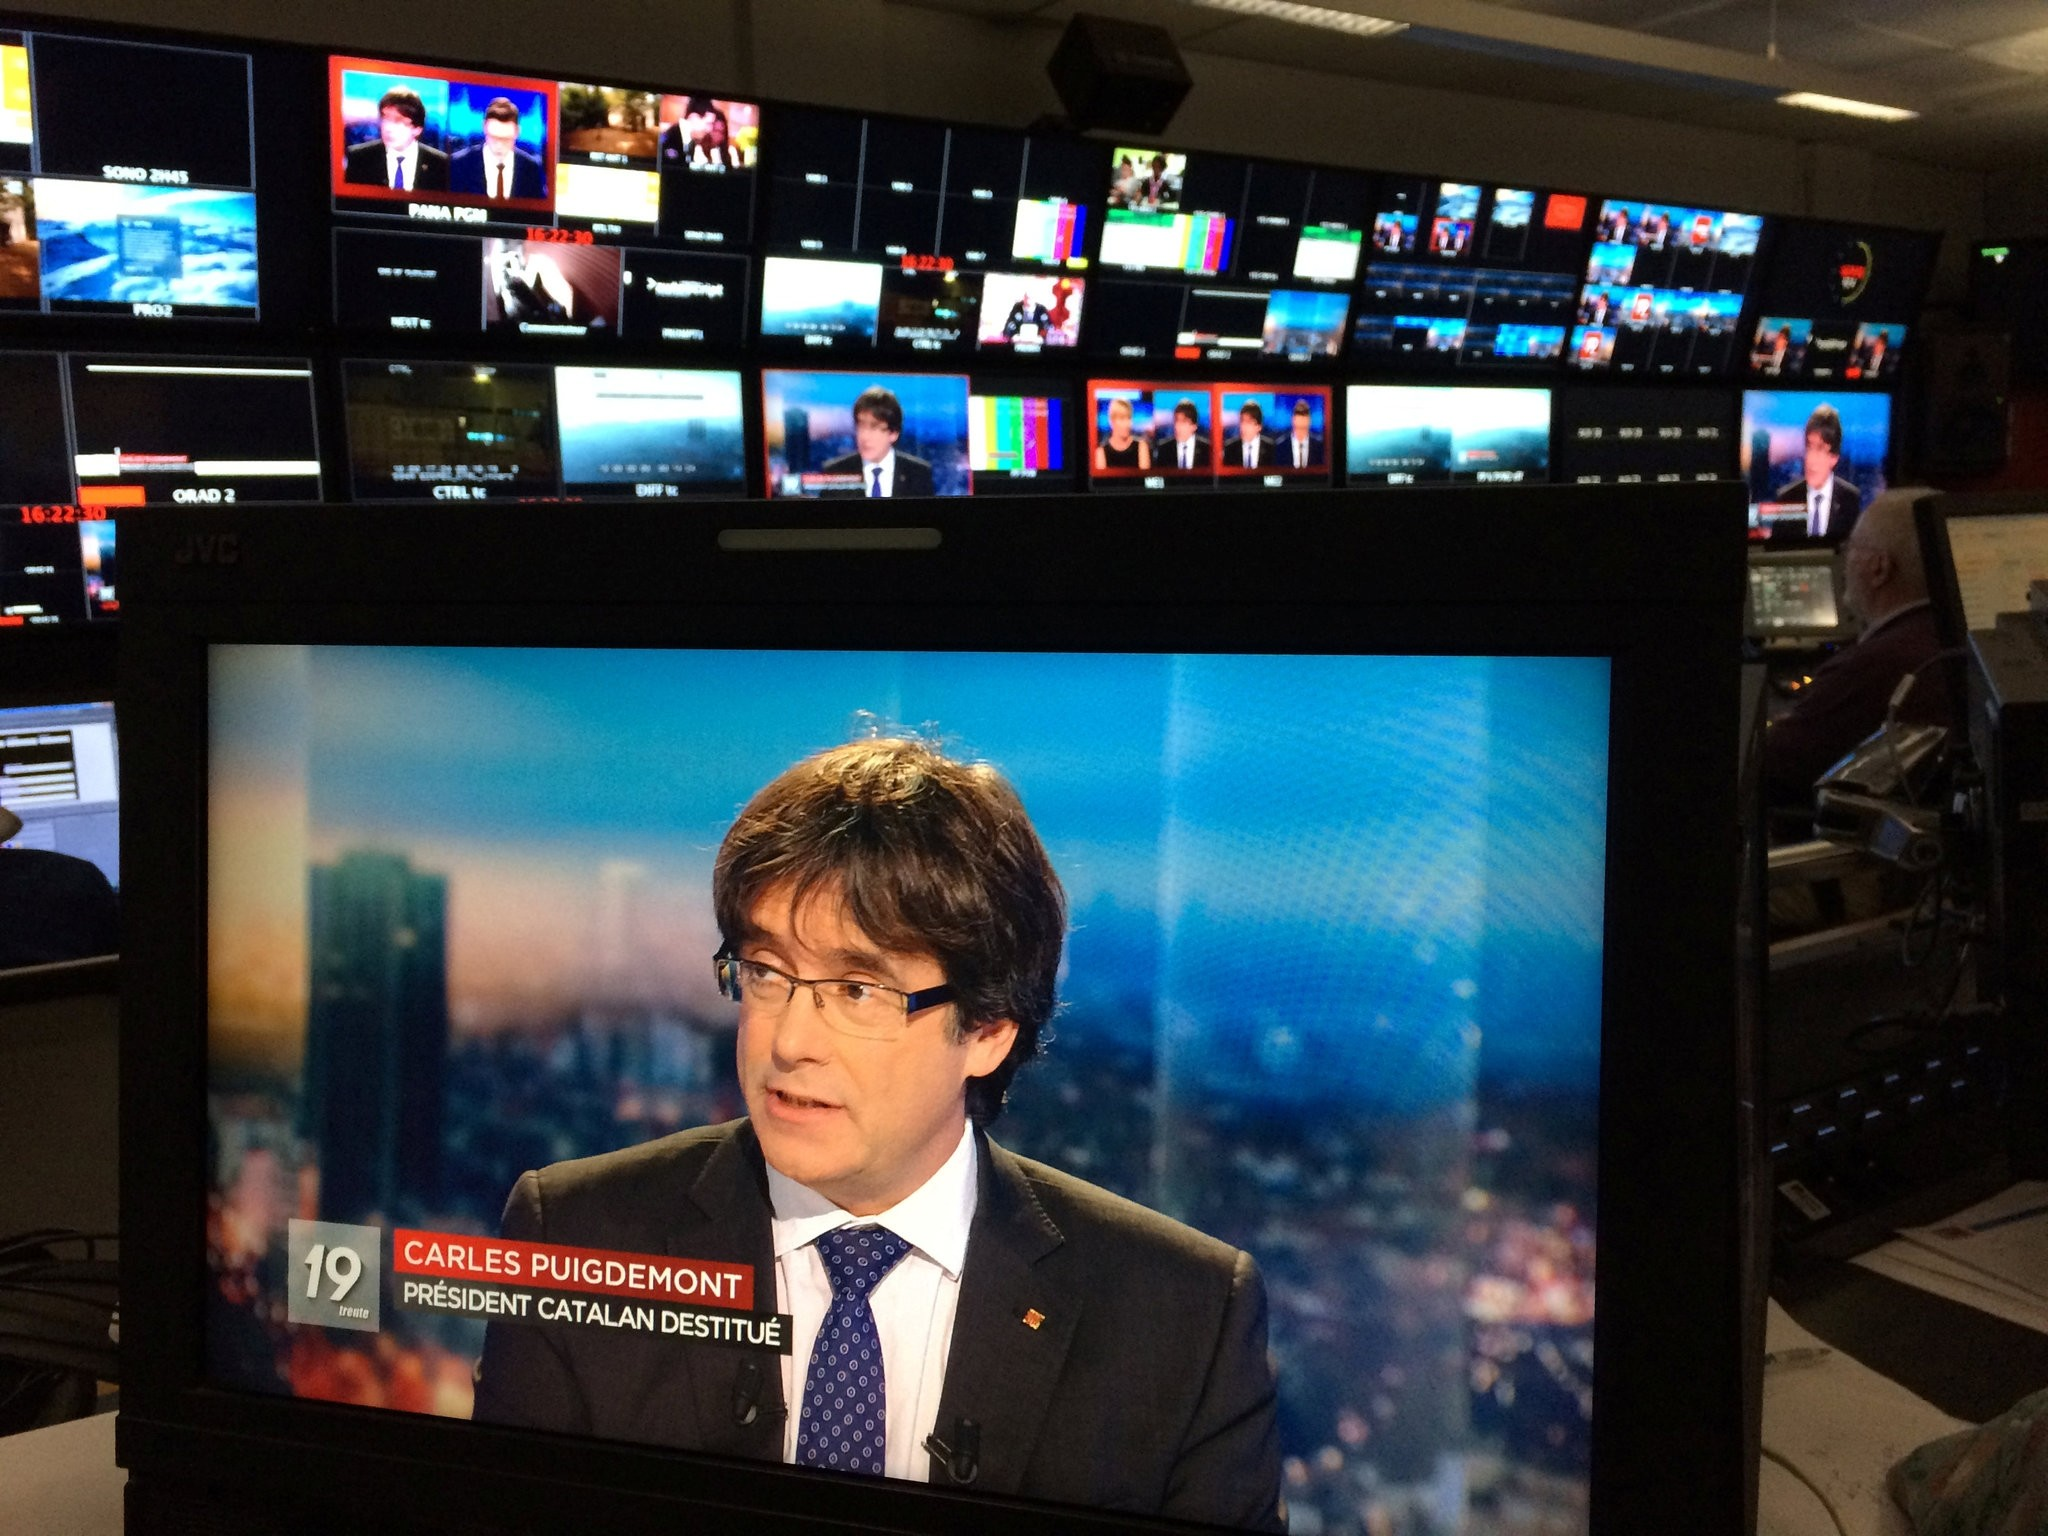 Ousted Catalan President Carles Puigdemont, who fled Belgium following the detention of eight Catalan ministers, appears on a monitor during a live TV interview on a screen in a bar in Brussels, Nov. 3.